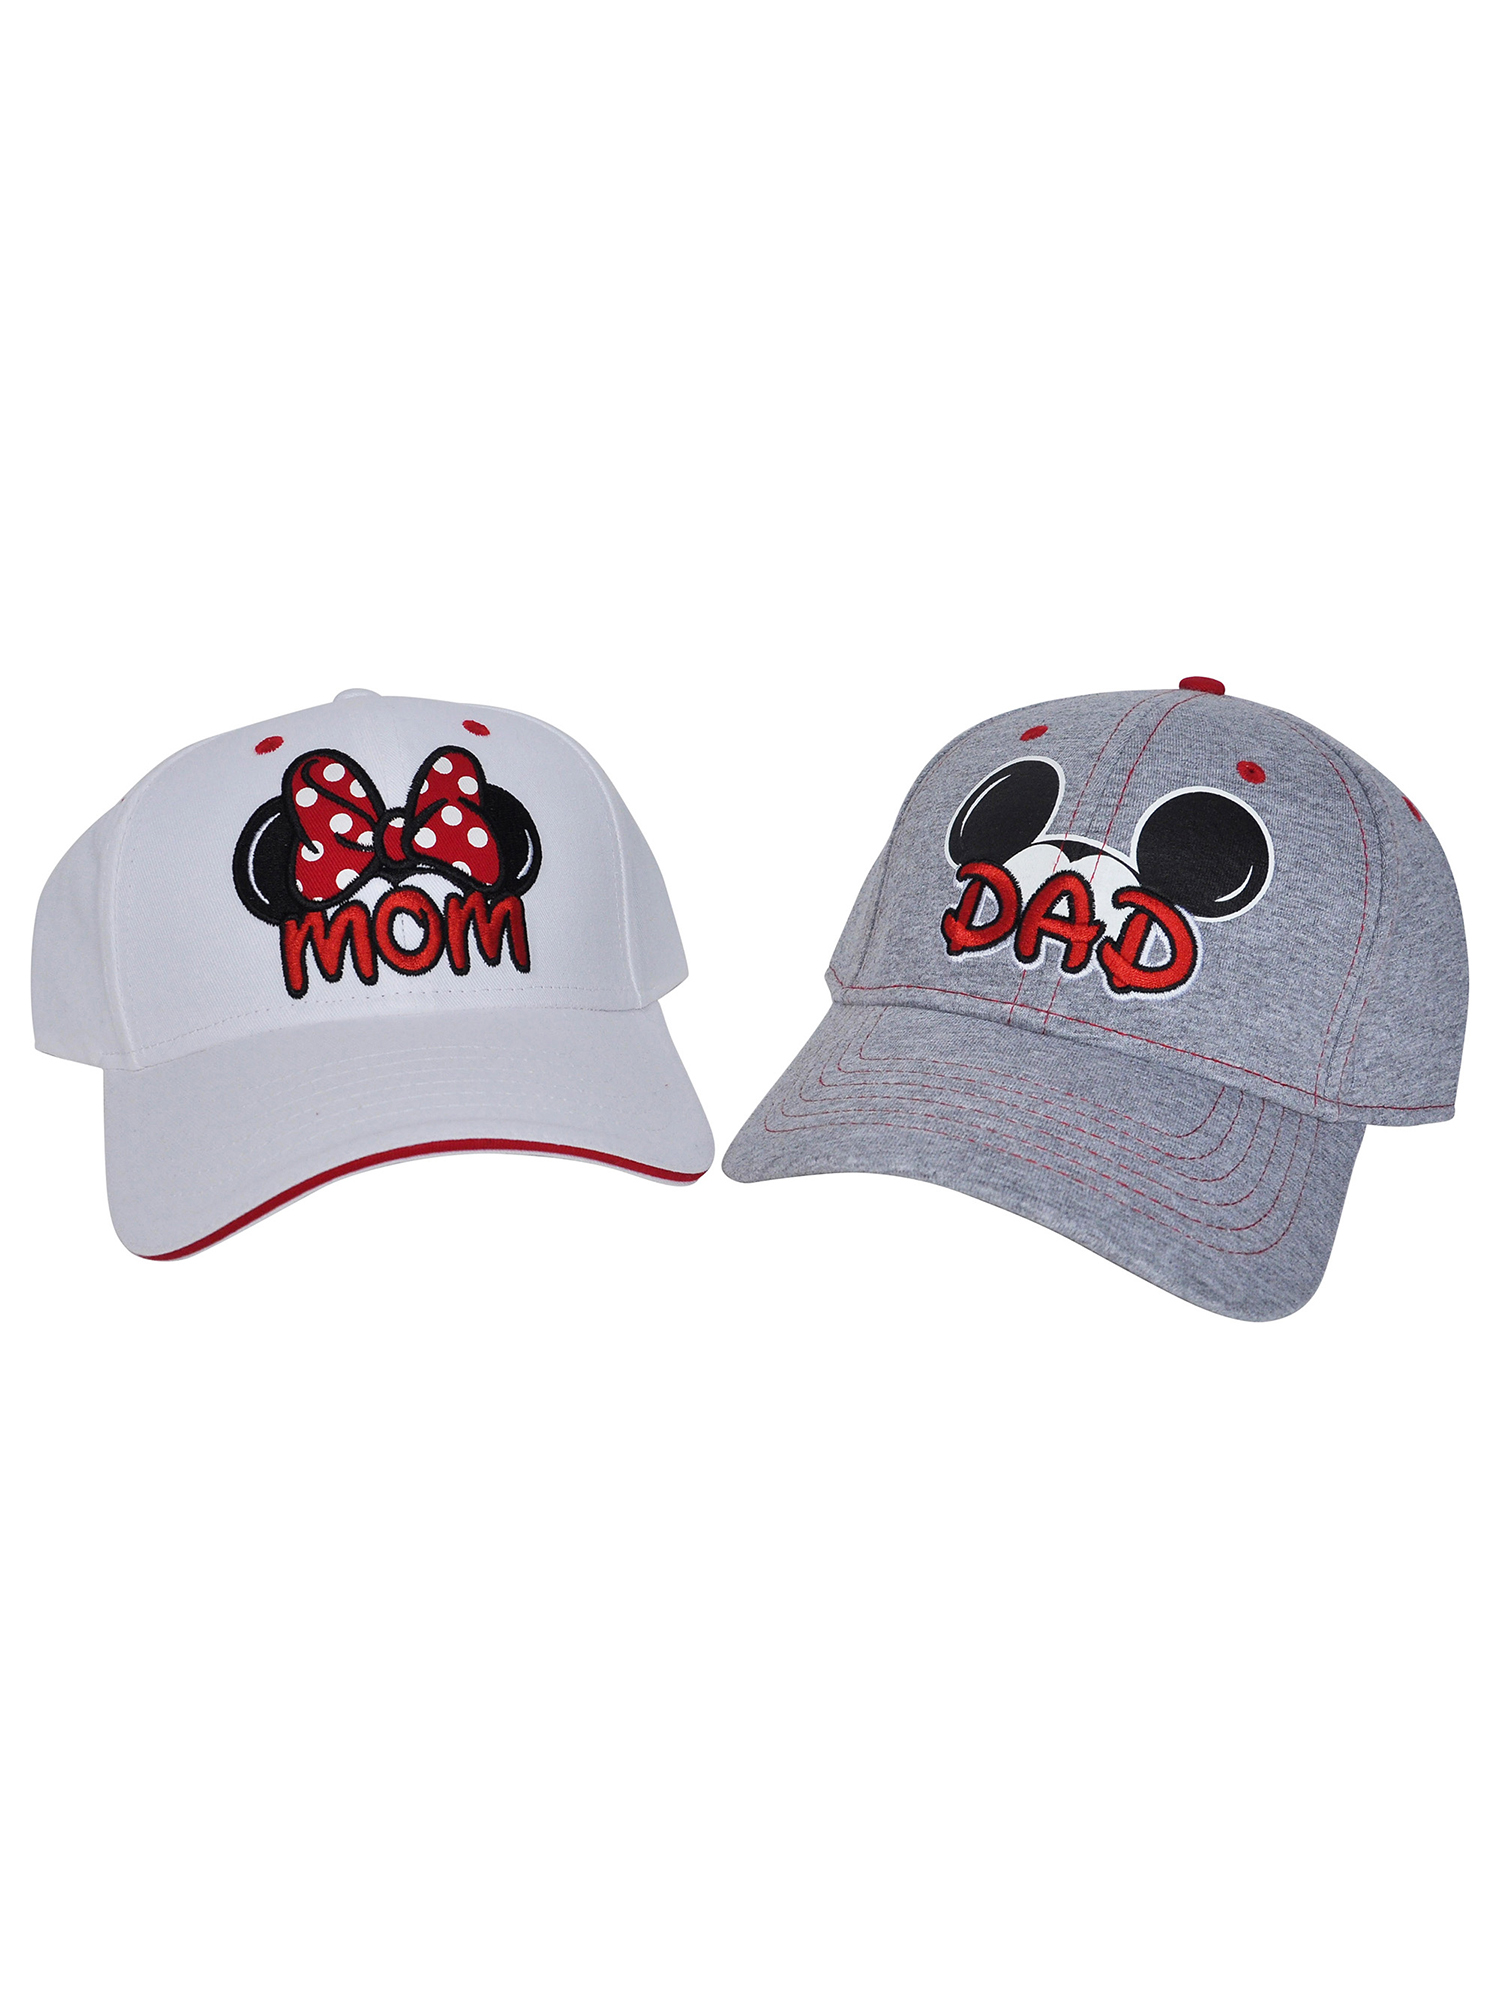 Mickey & Minnie Mouse Mom & Dad Hat 2PC Gift Set